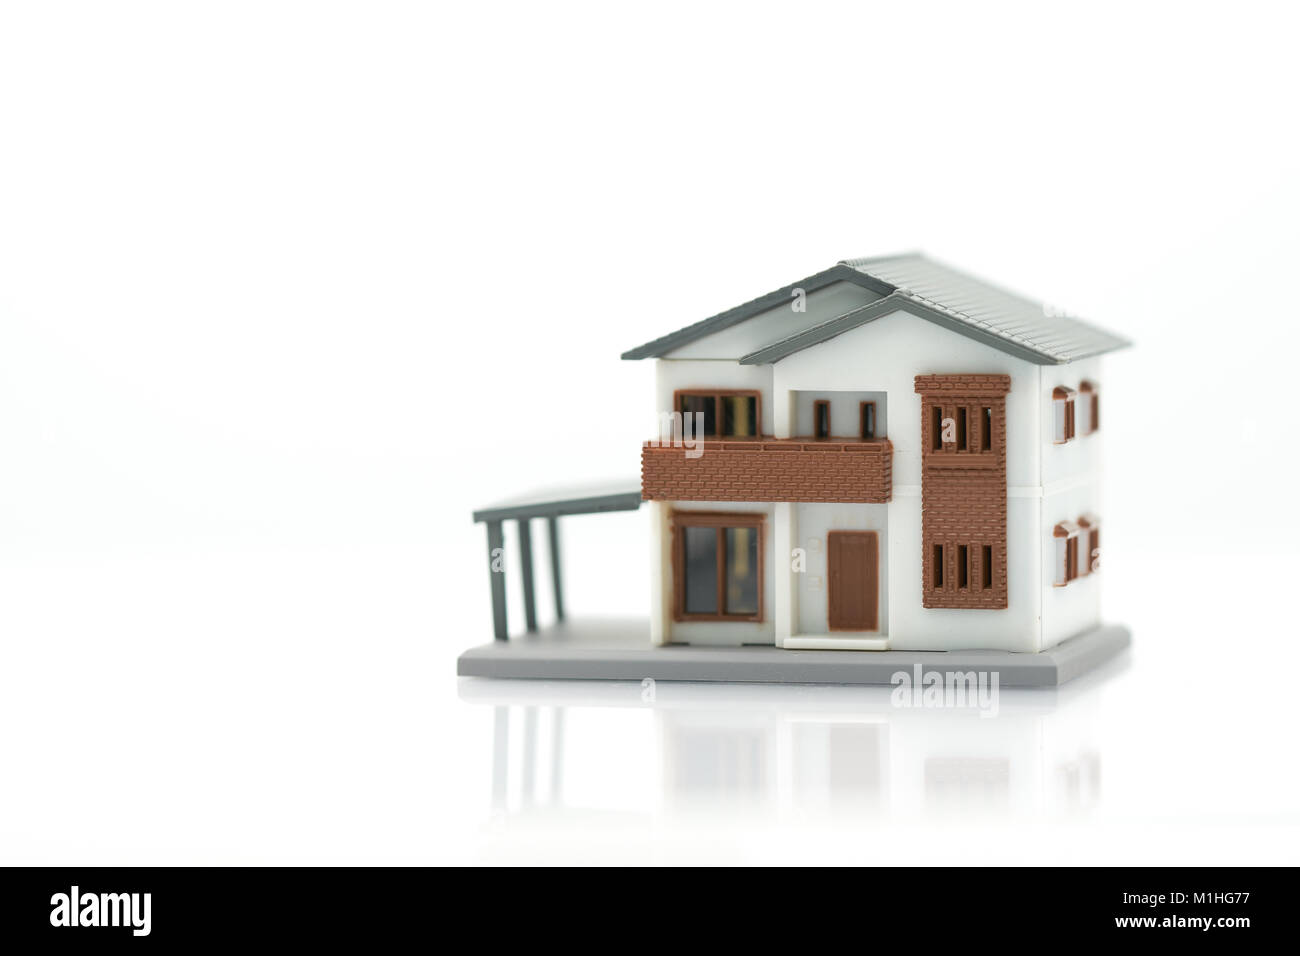 Project Finance Financial Accommodation Stock Photos & Project